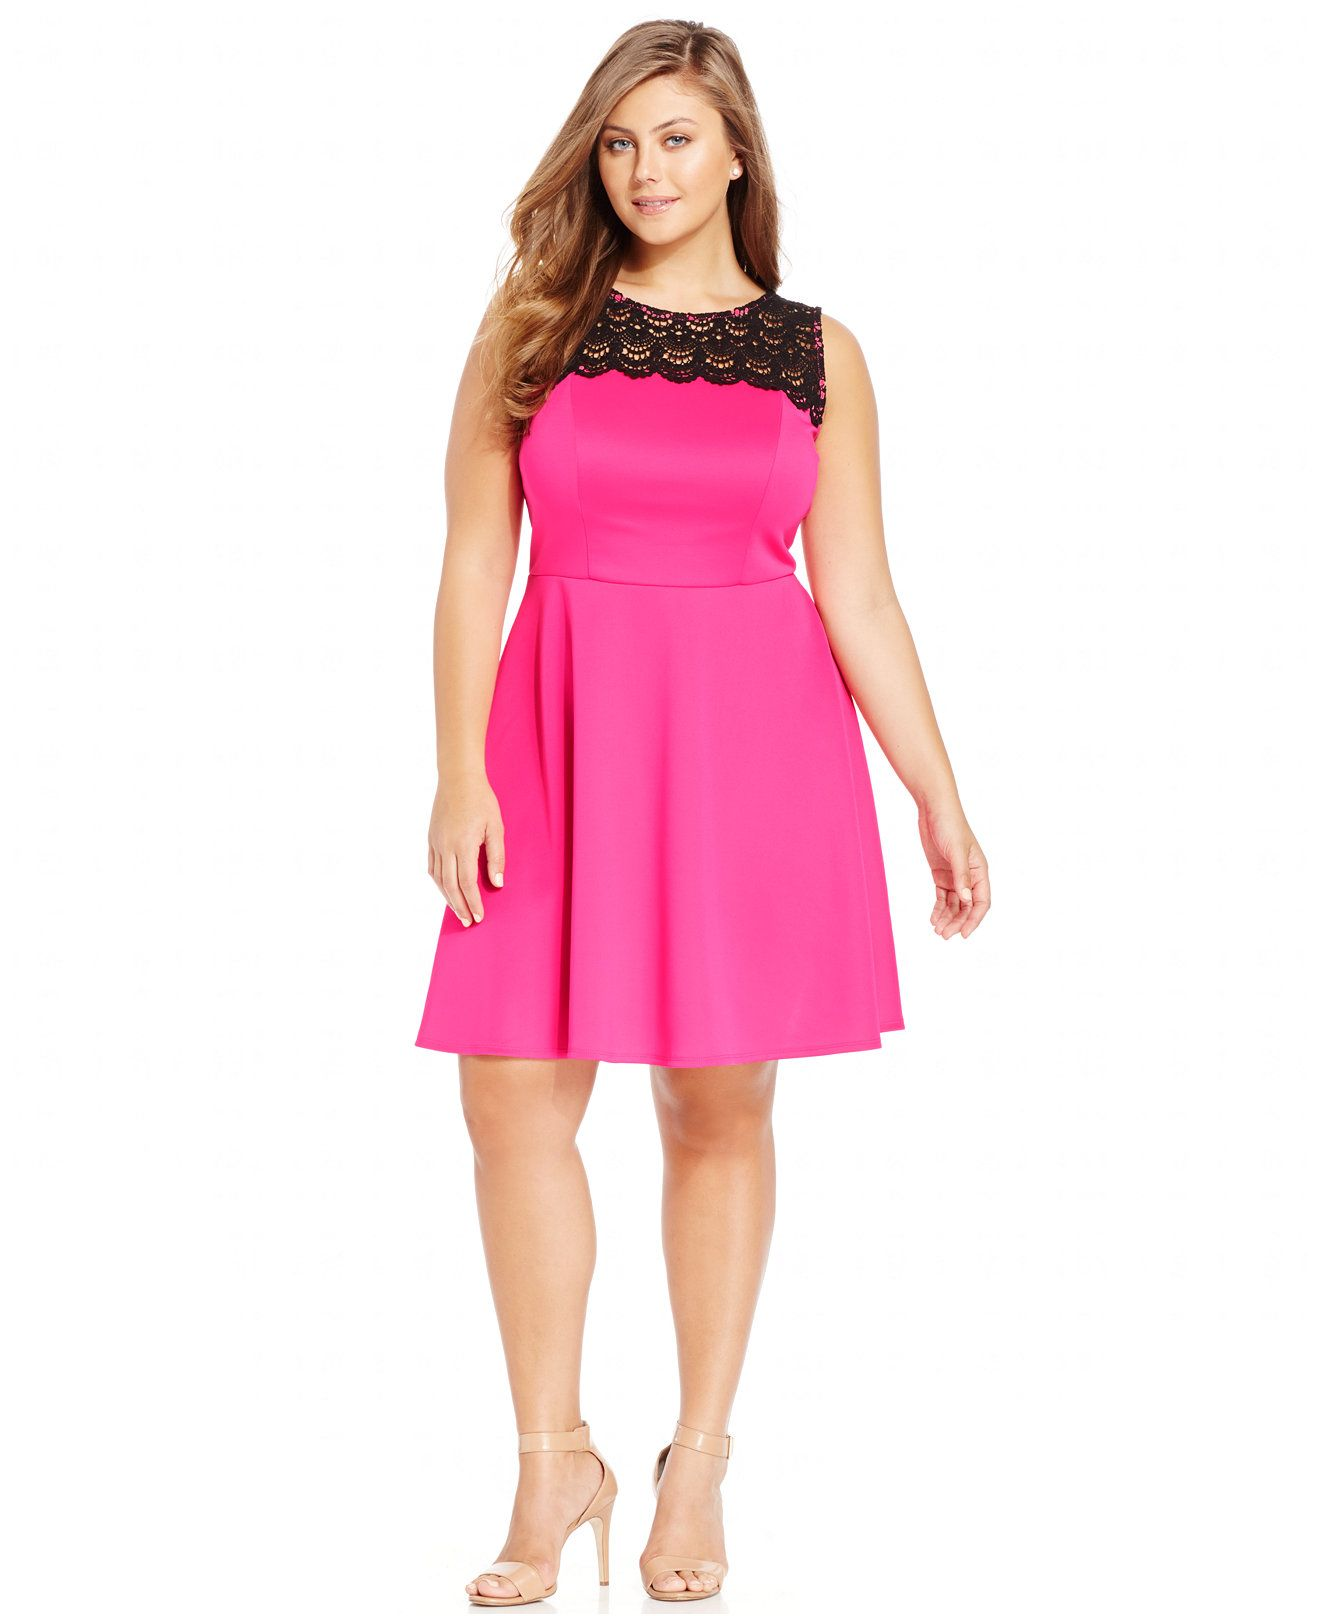 Trixxi Plus Size Lace Illusion A-Line Dress - Dresses - Plus Sizes ...